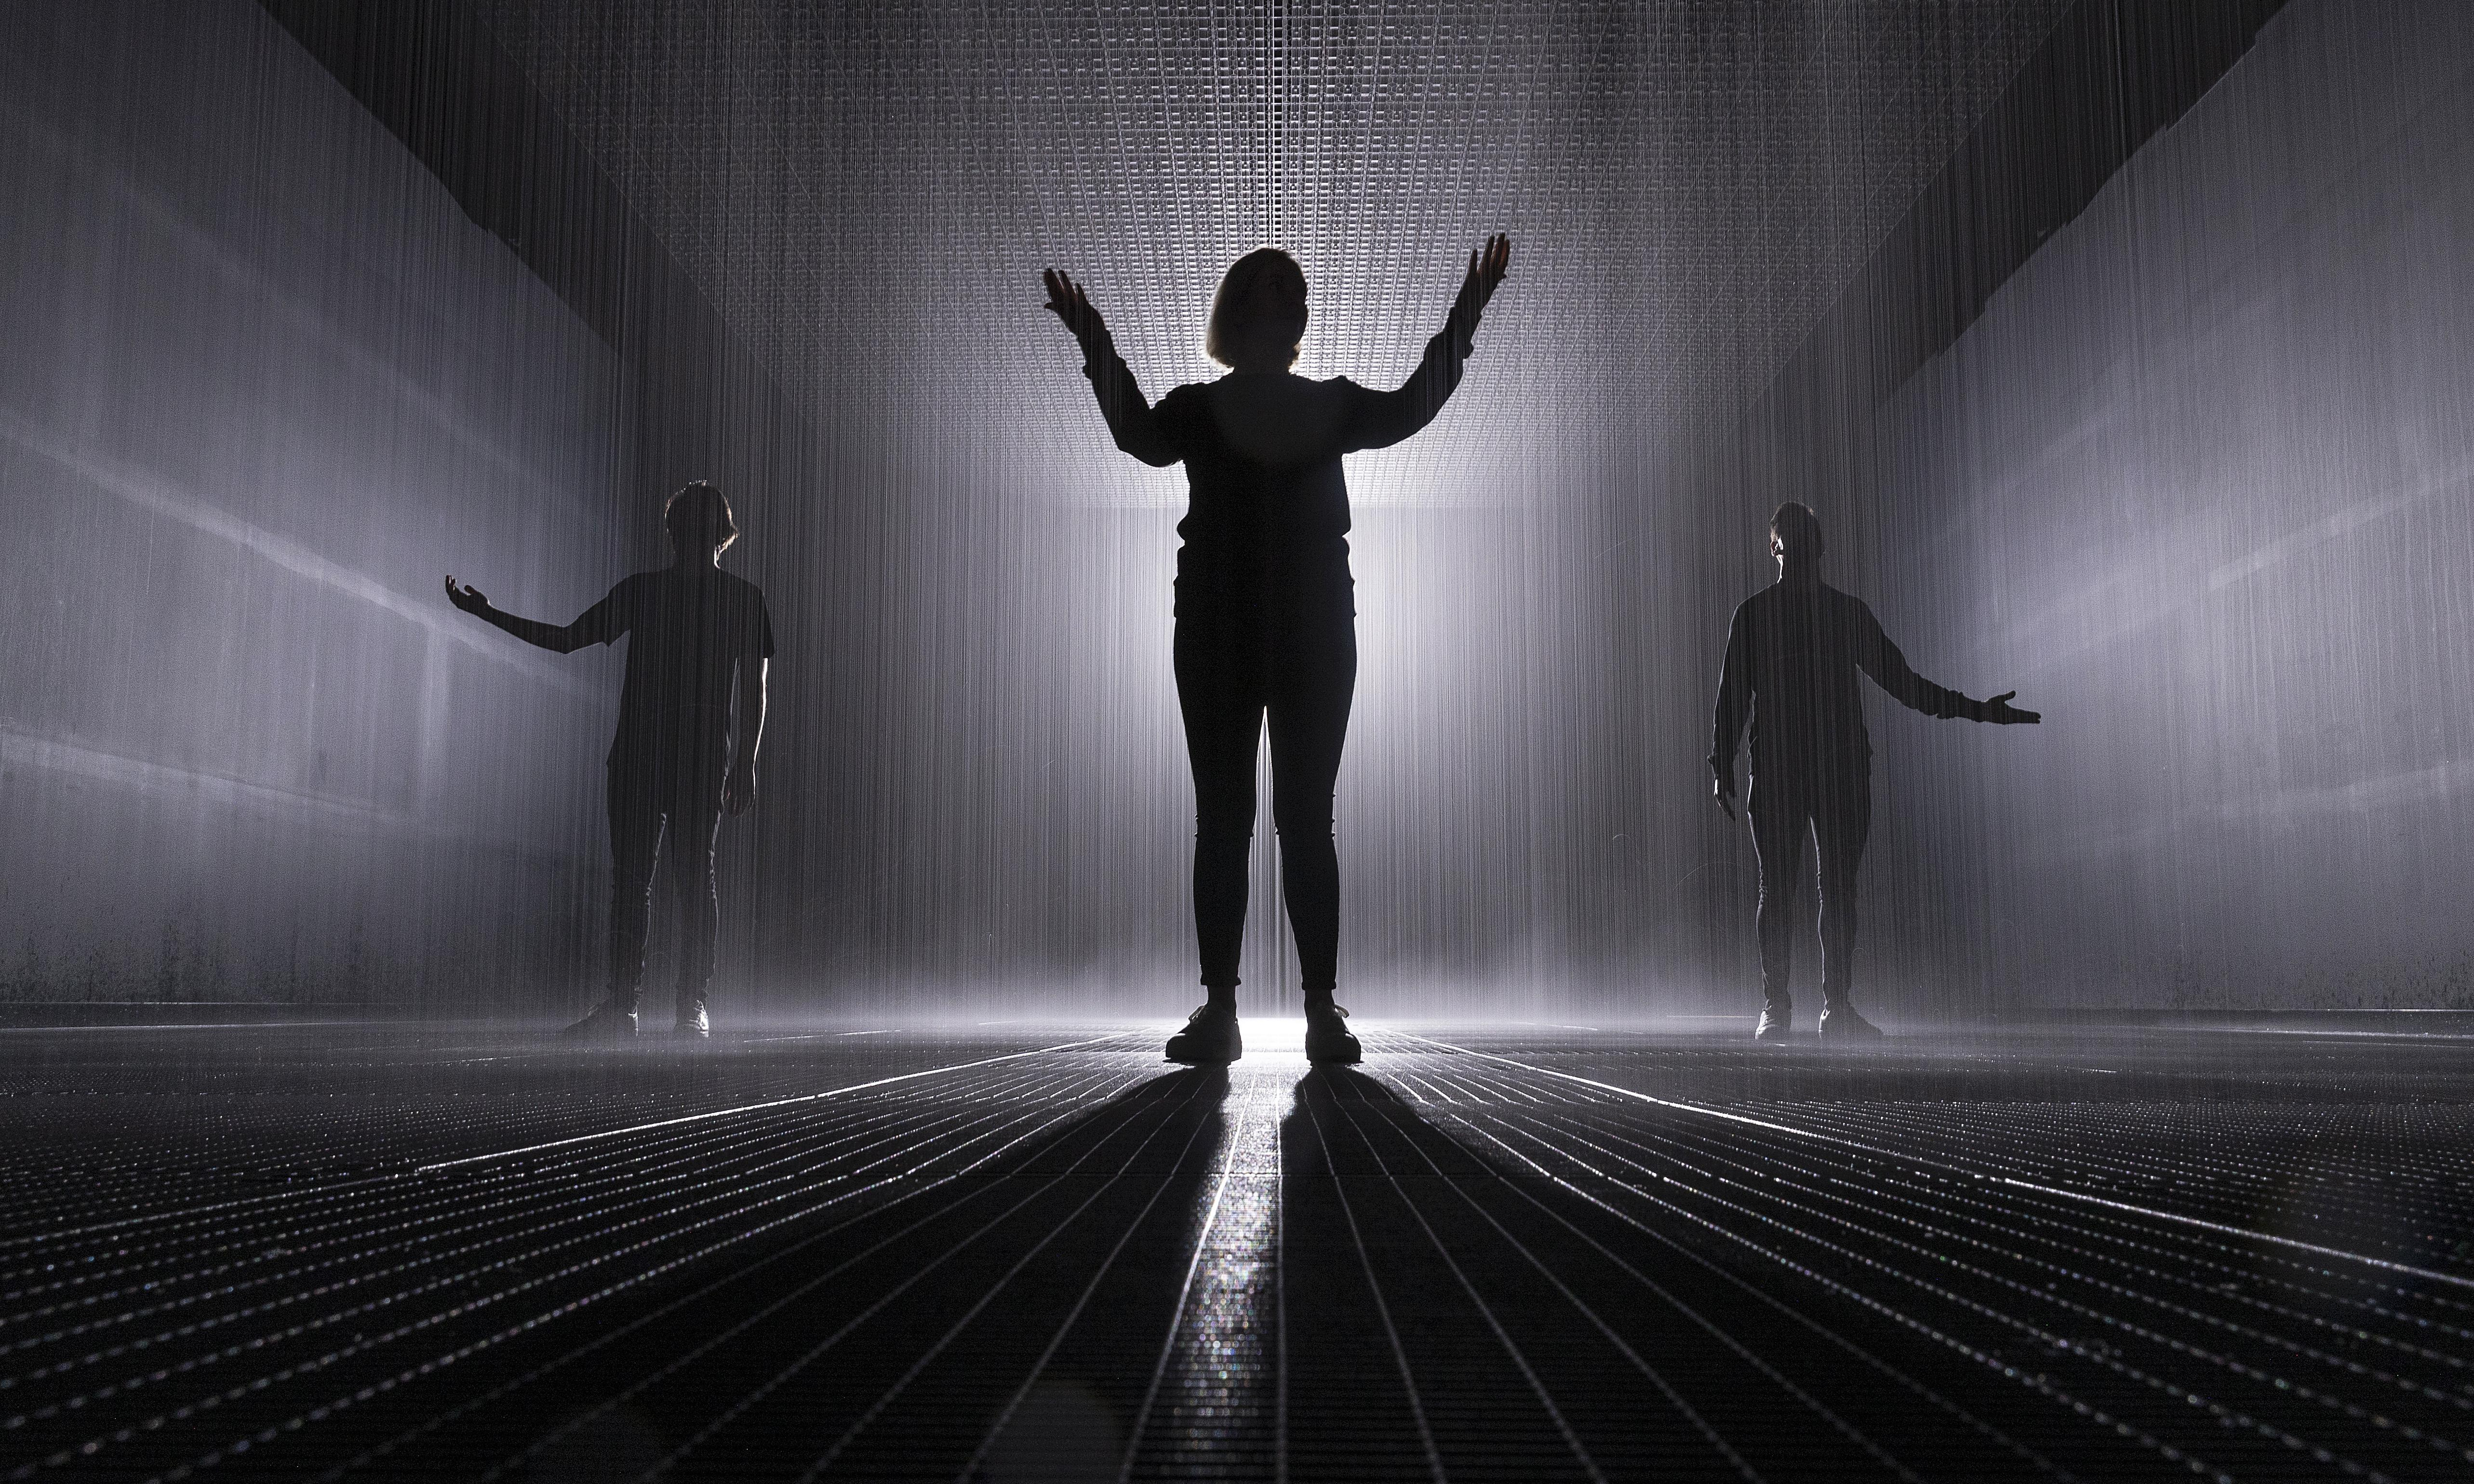 Rain Room offers art lovers – and Instagrammers – the perfect storm